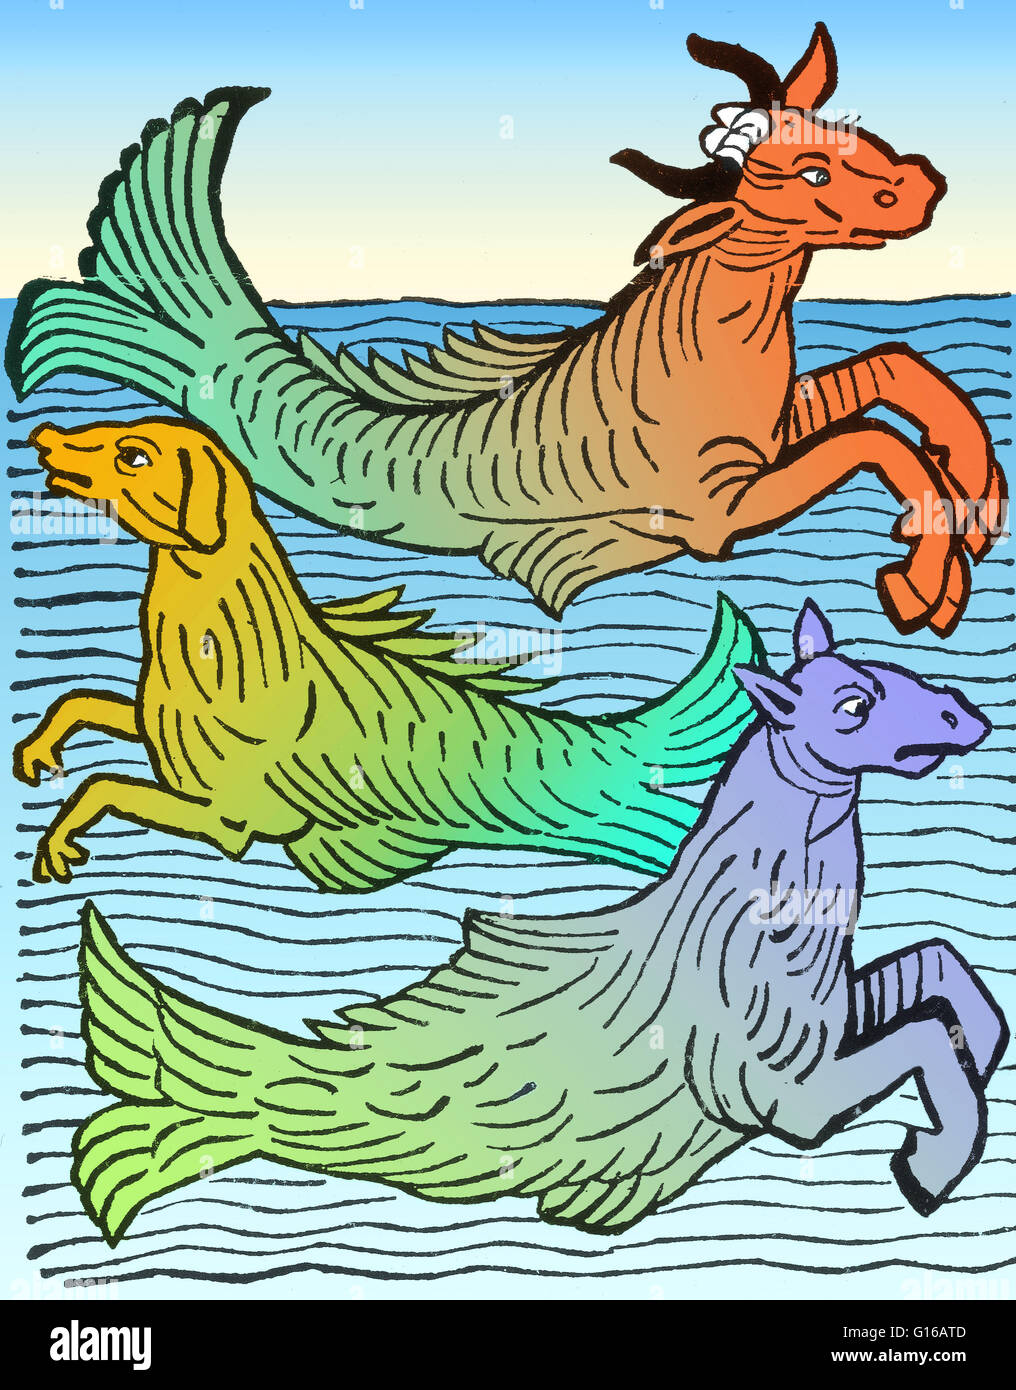 Woodcut of three mythical sea creatures (a sea cow, sea dog, and sea horse) from Hortus Sanitatis printed by Jacob - Stock Image